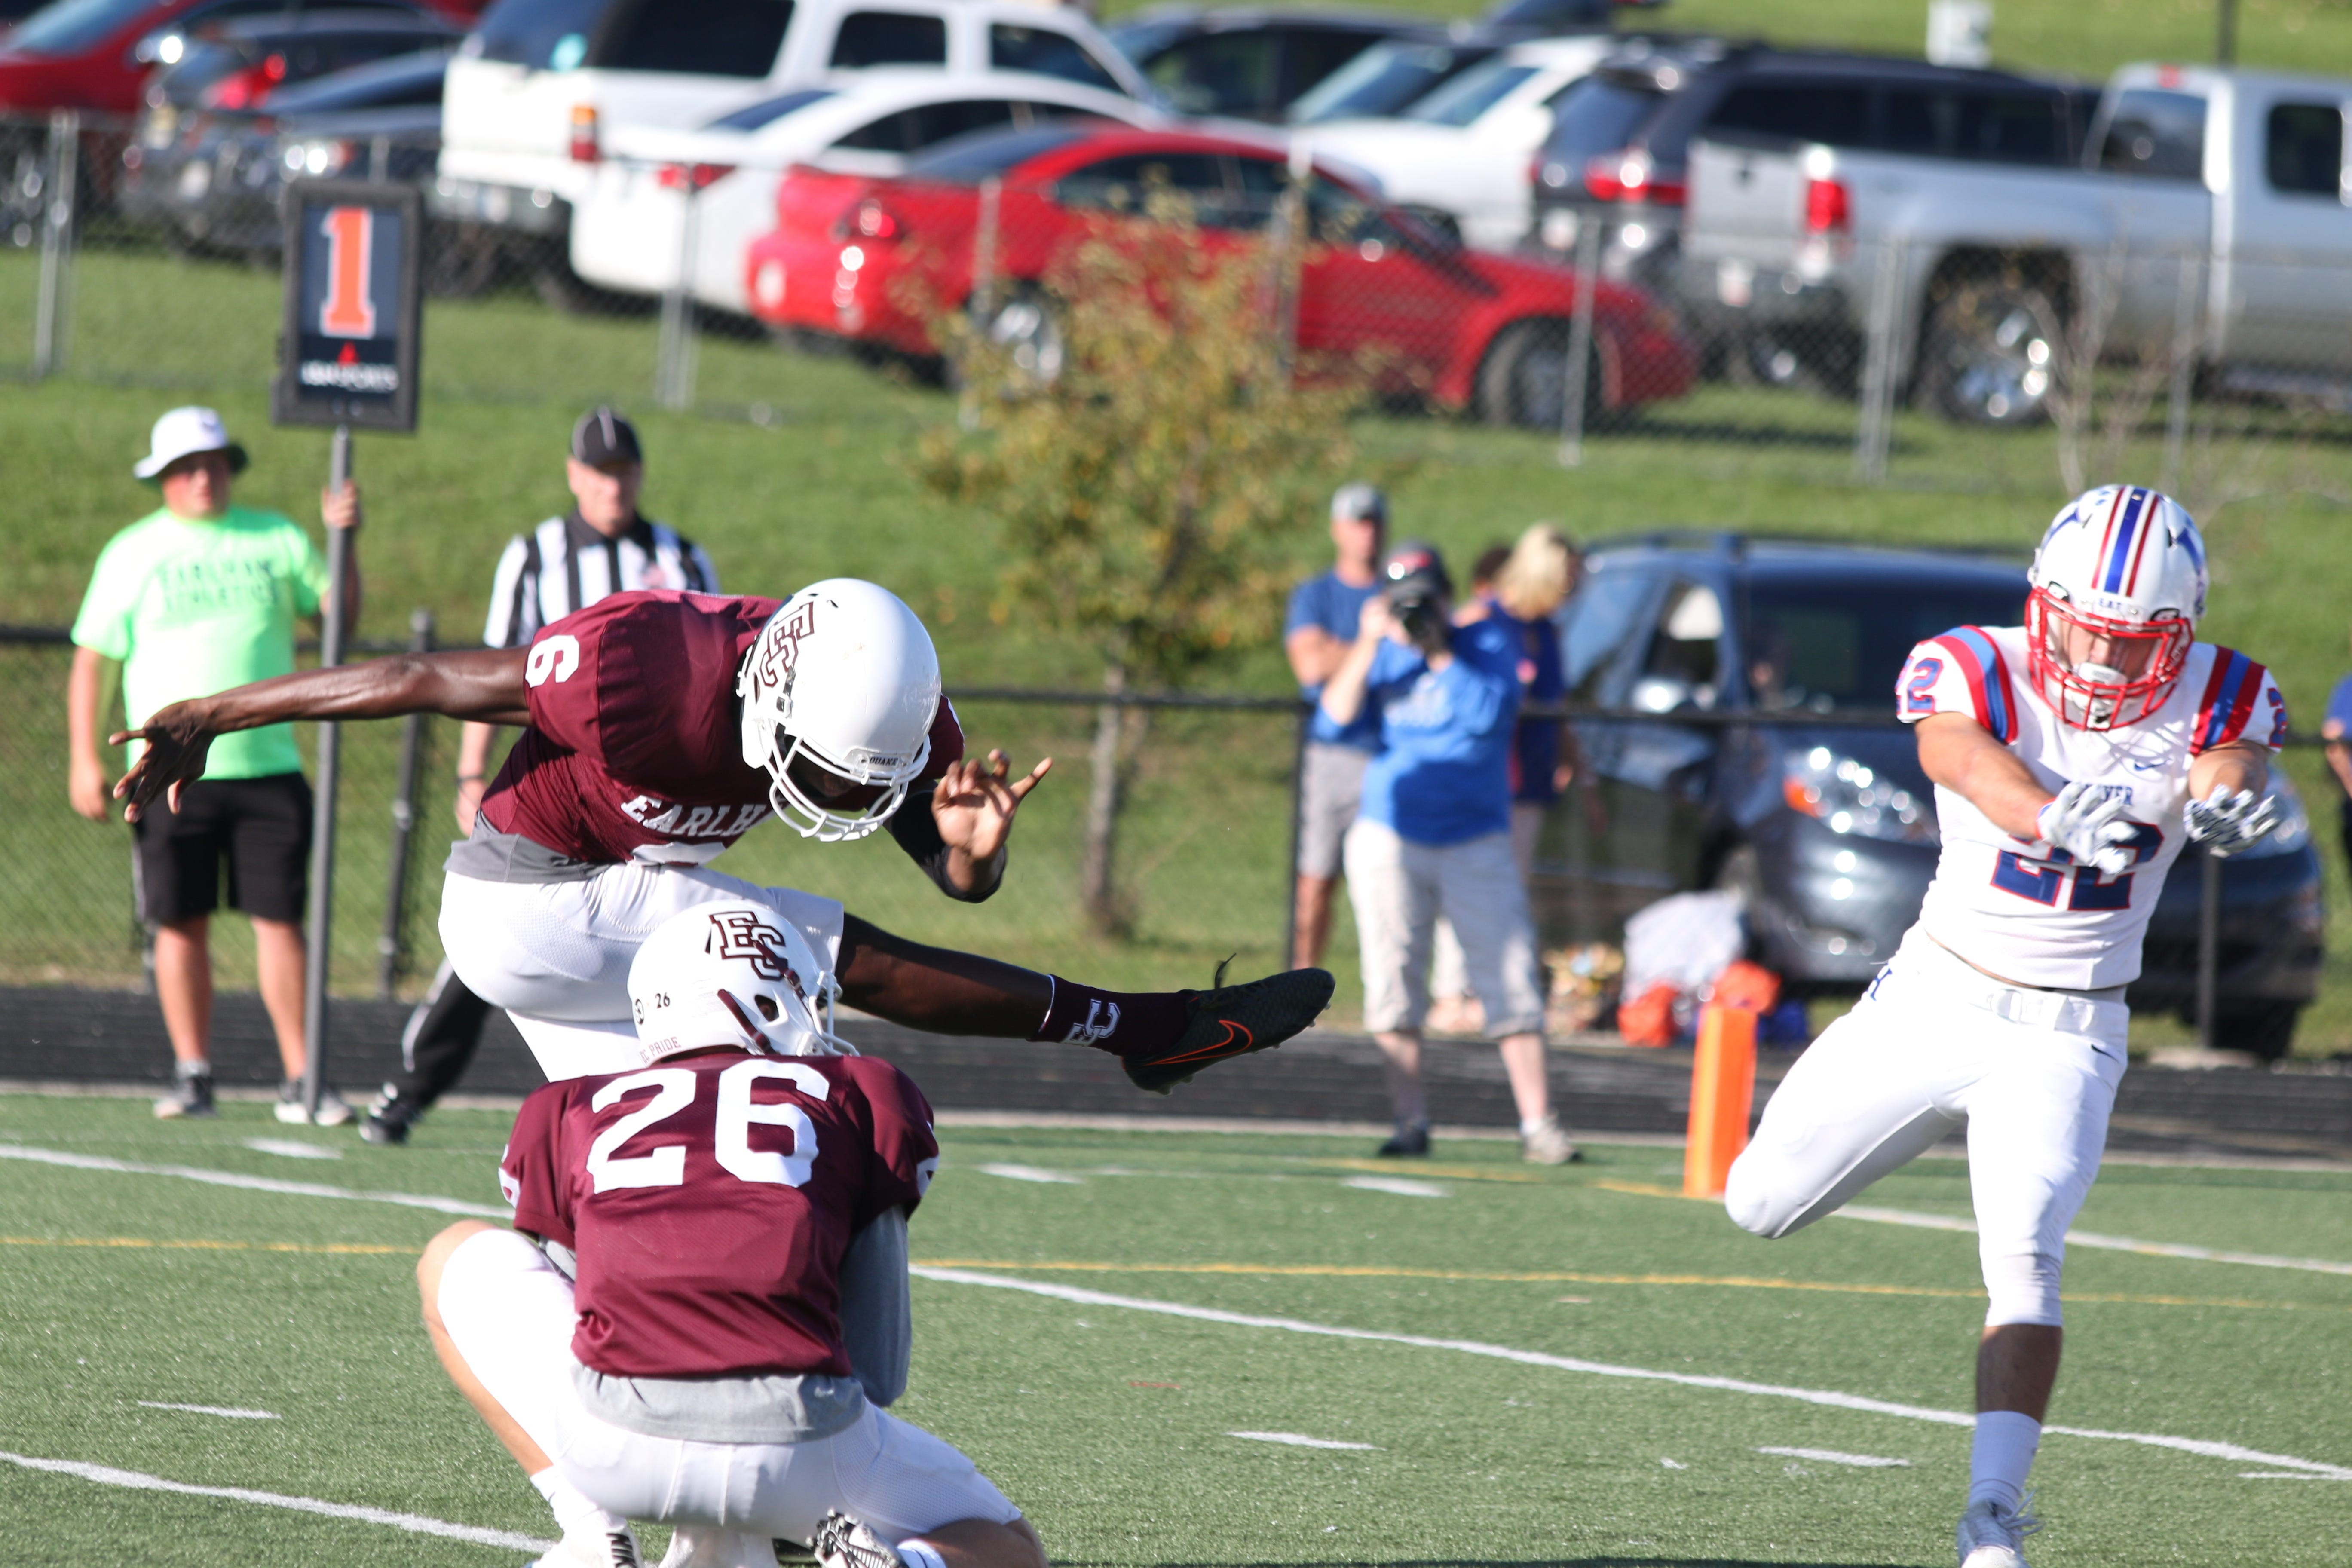 Justin Kerobo, a Winton Woods graduate, kicks for the Earlham College football team in an Oct. 21, 2017, game with Hanover.